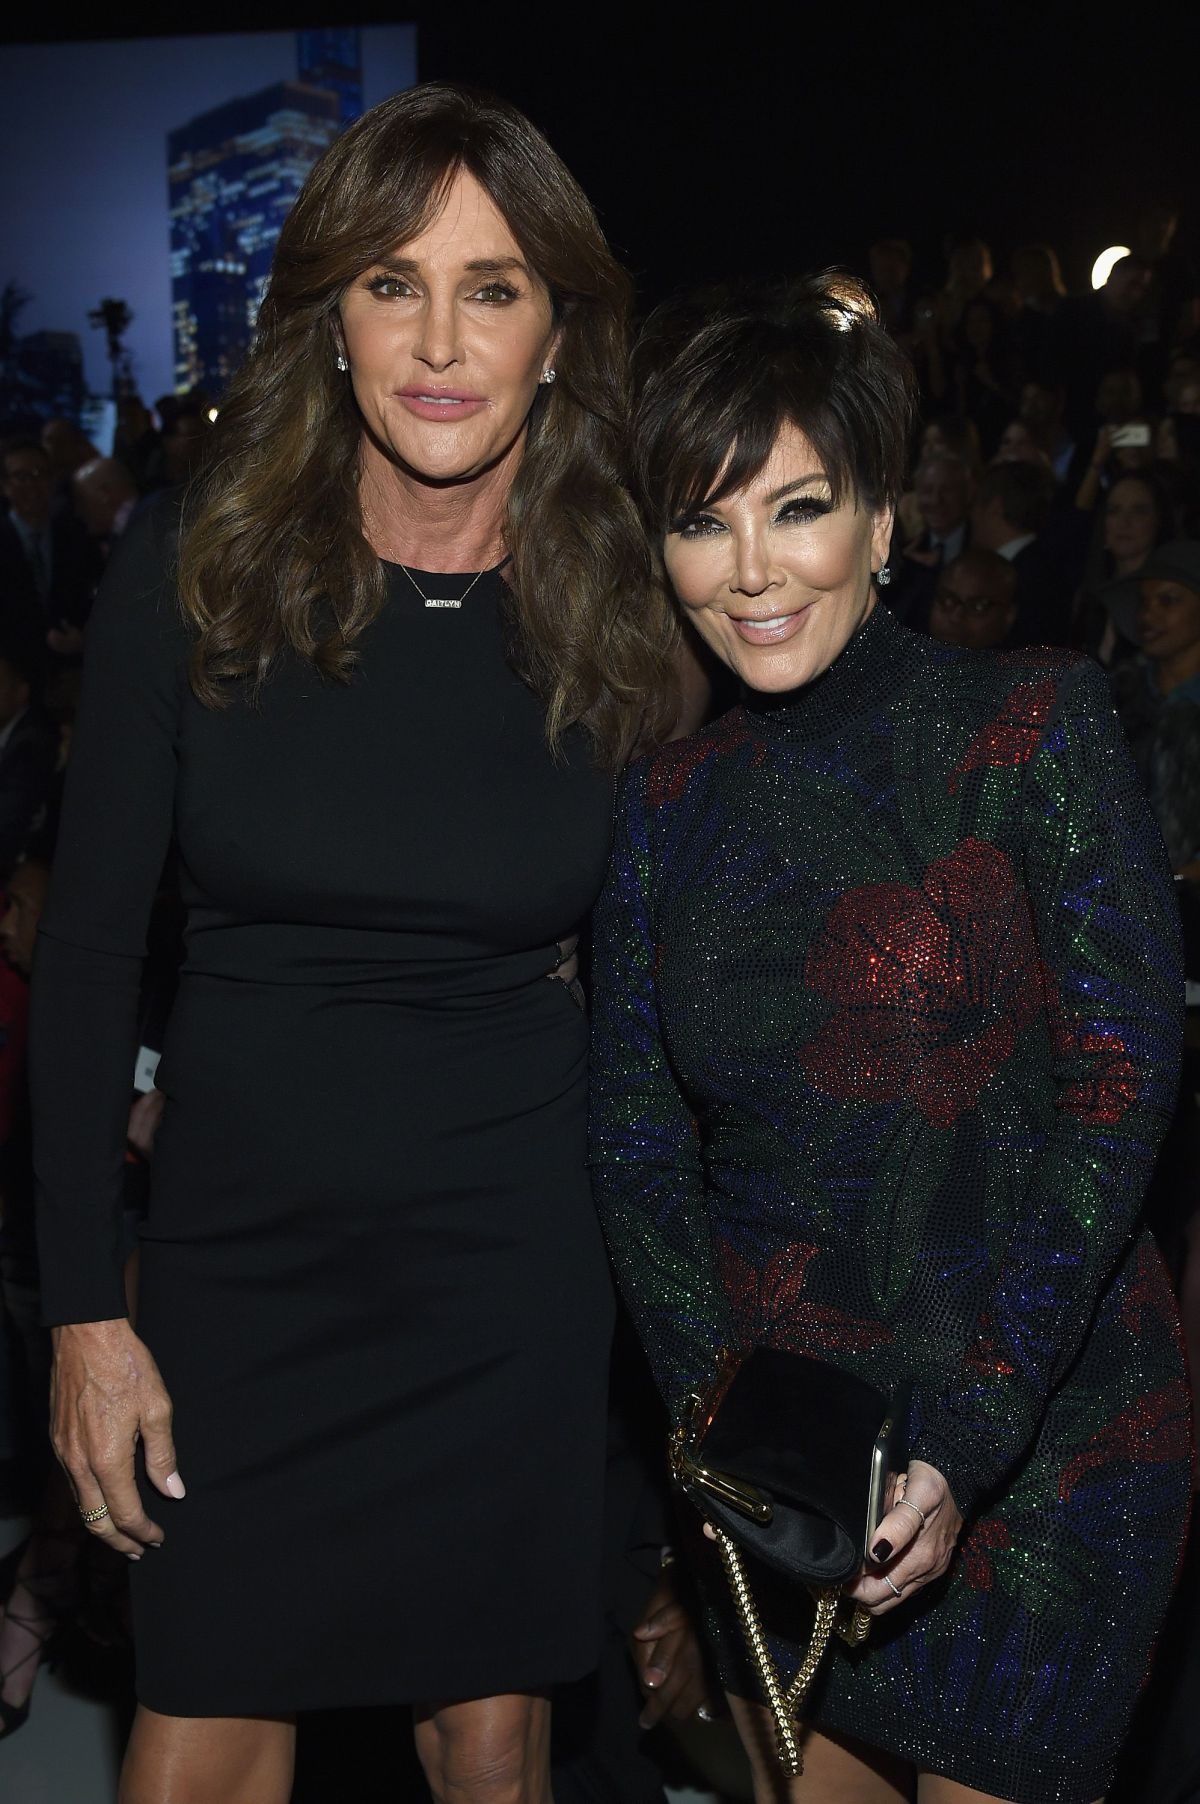 Caitlyn Jenner Reveals The Qualities That Attracted Her To KUTWK's Kris Jenner